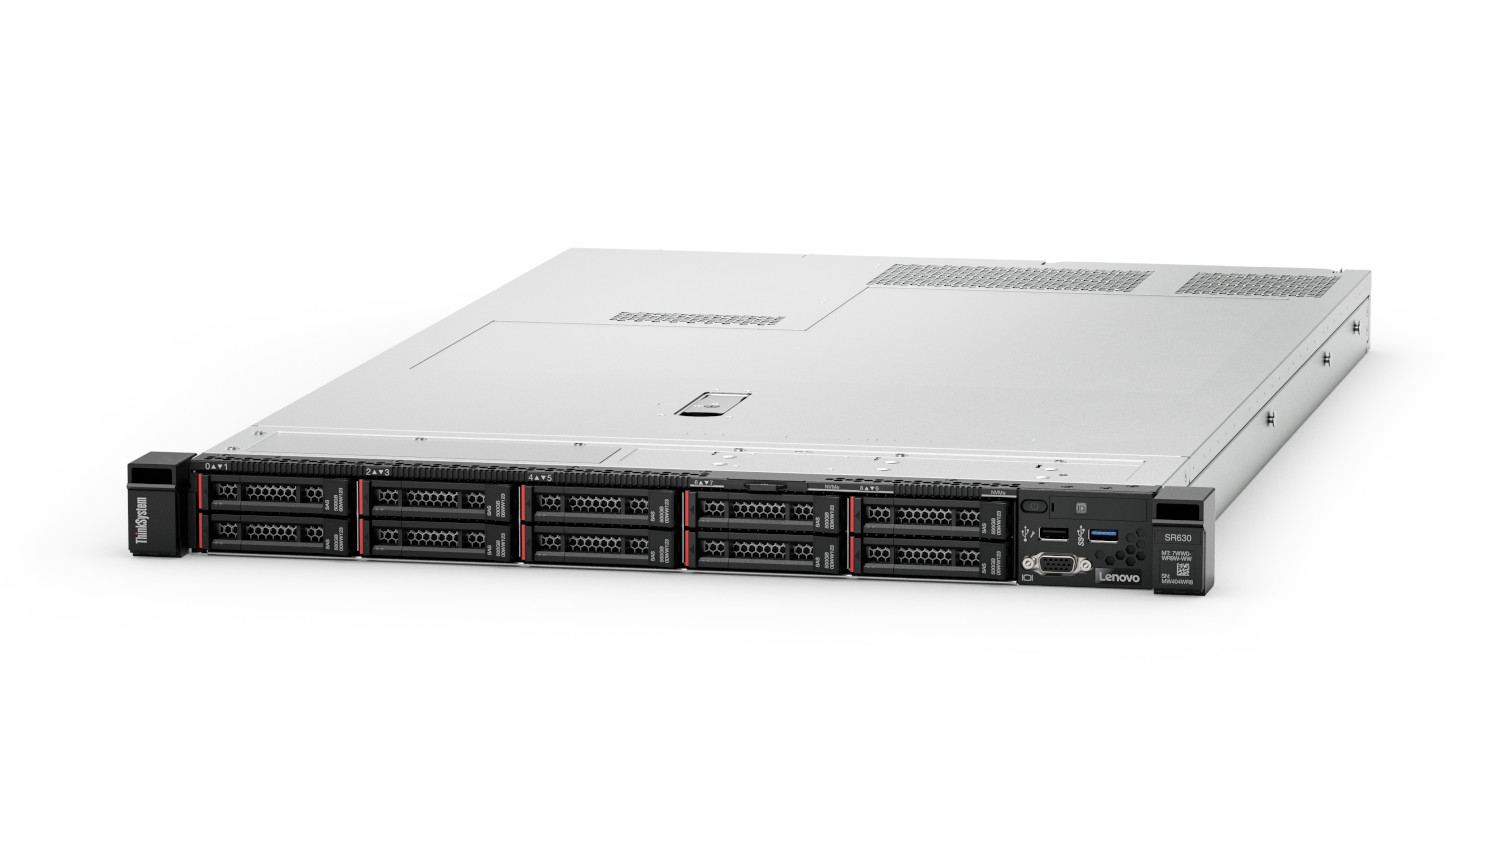 This image shows the Lenovo ThinkSystem SR630 in a front left-facing view